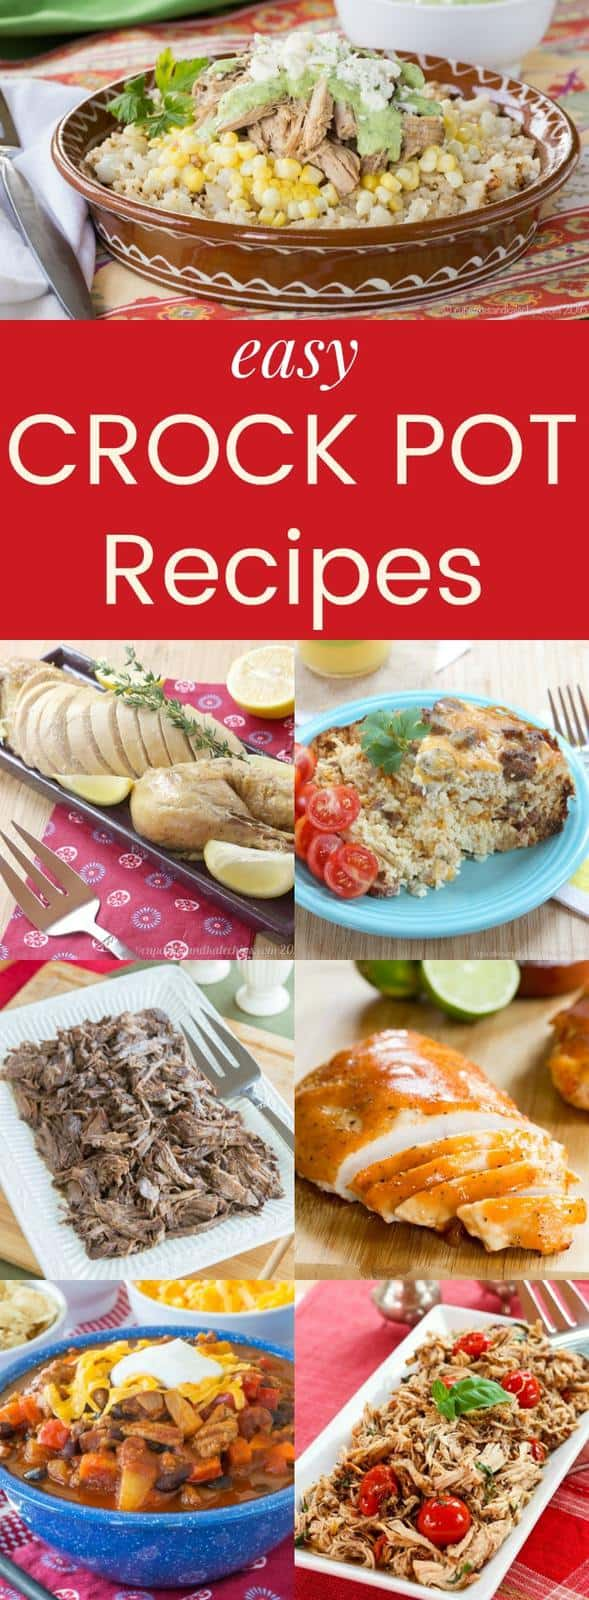 Each Crock Pot Recipes - these slow cooker recipes are perfect for busy days especially during back-to-school season. Breakfast, dinner, and dessert ideas!